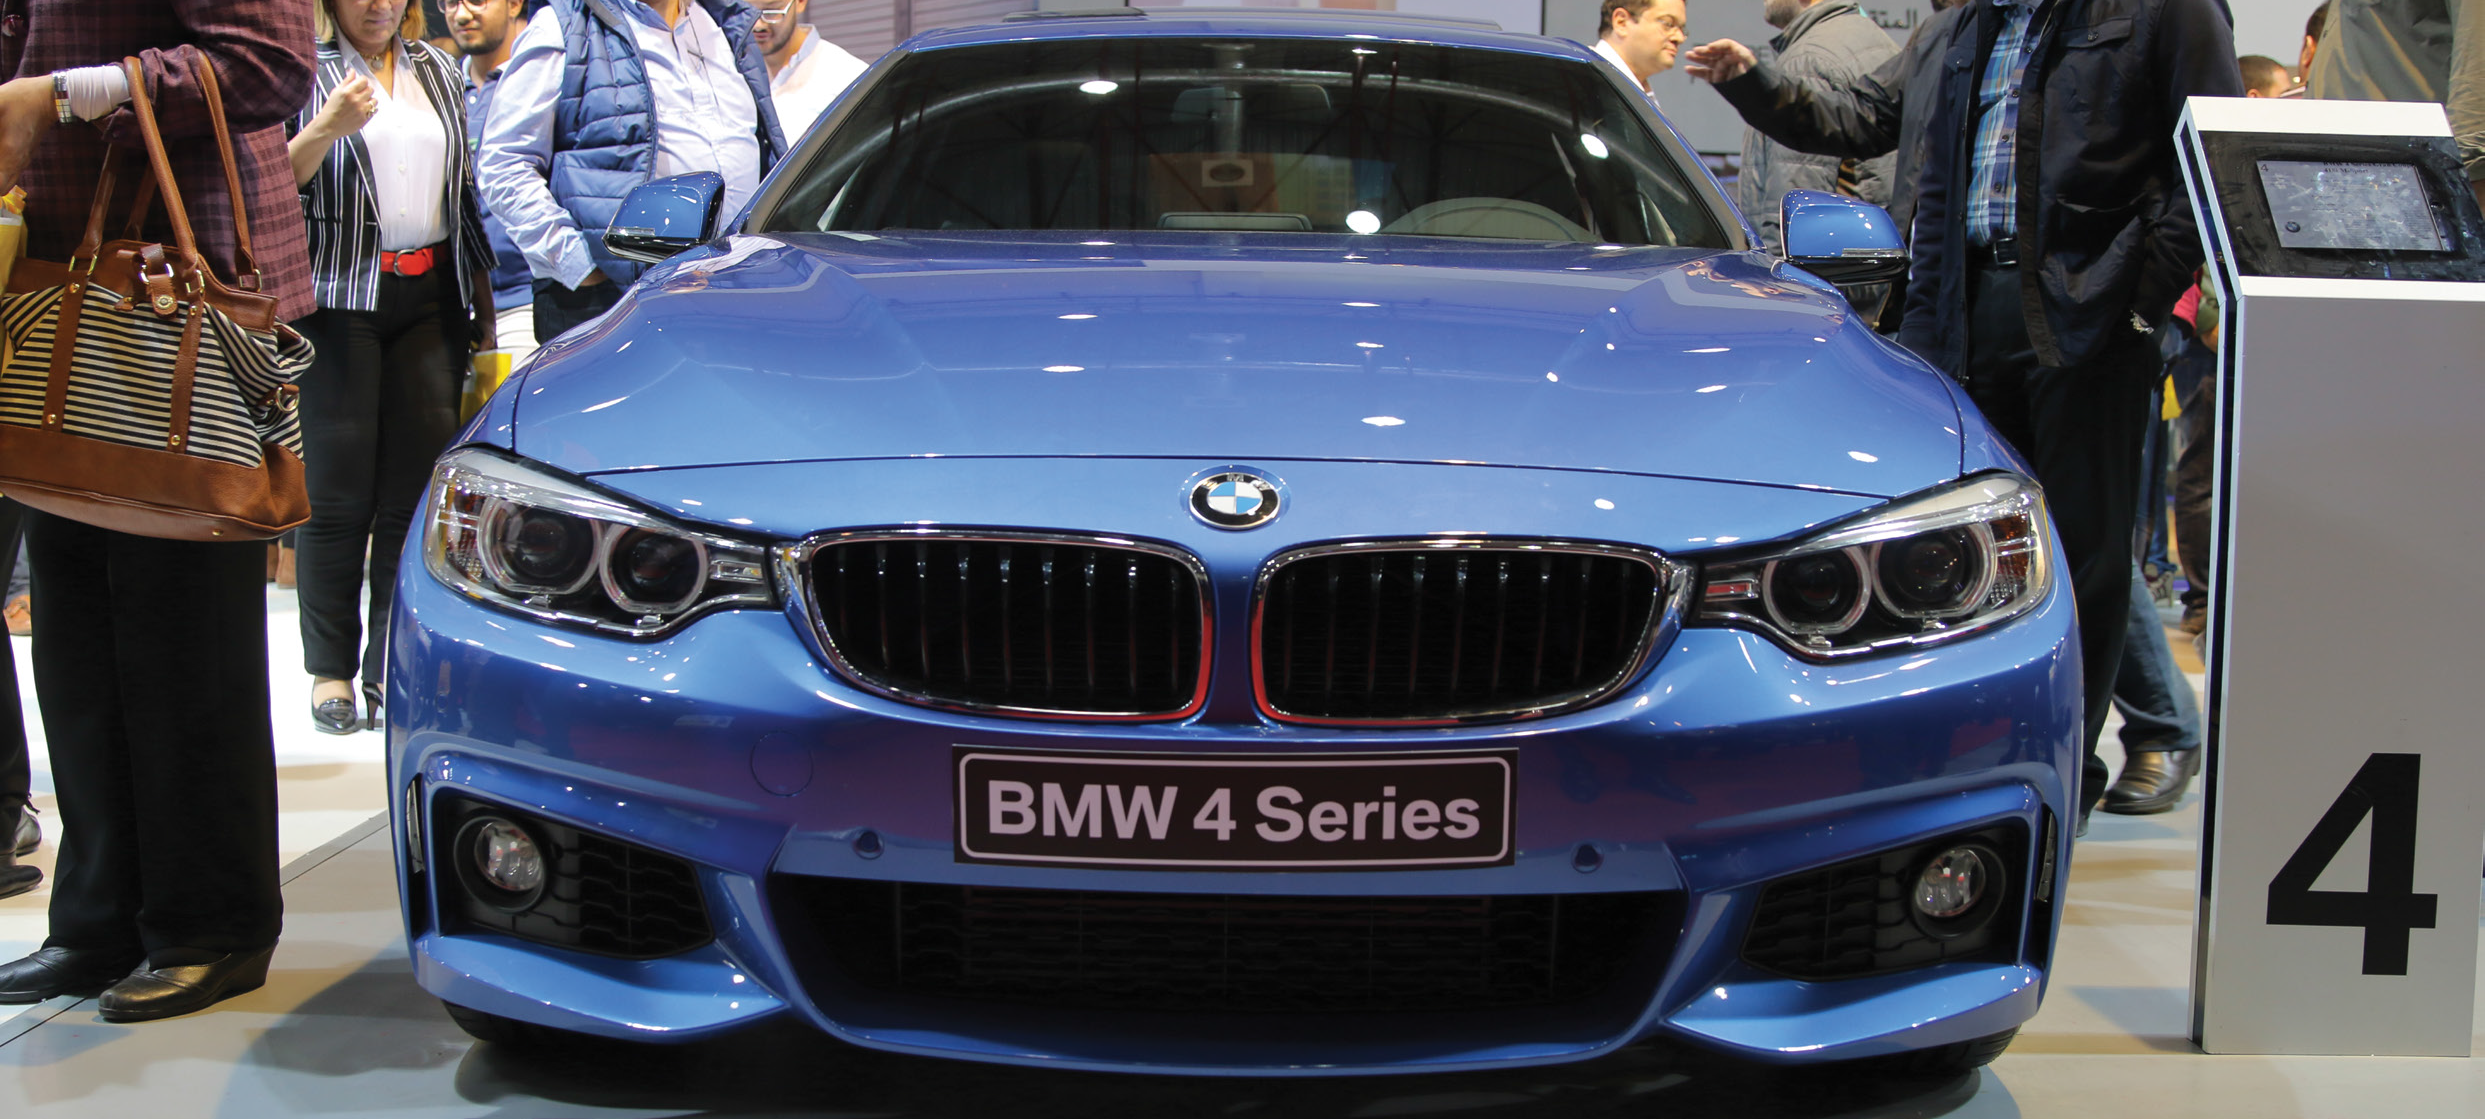 BMW Egypt: All News and Events